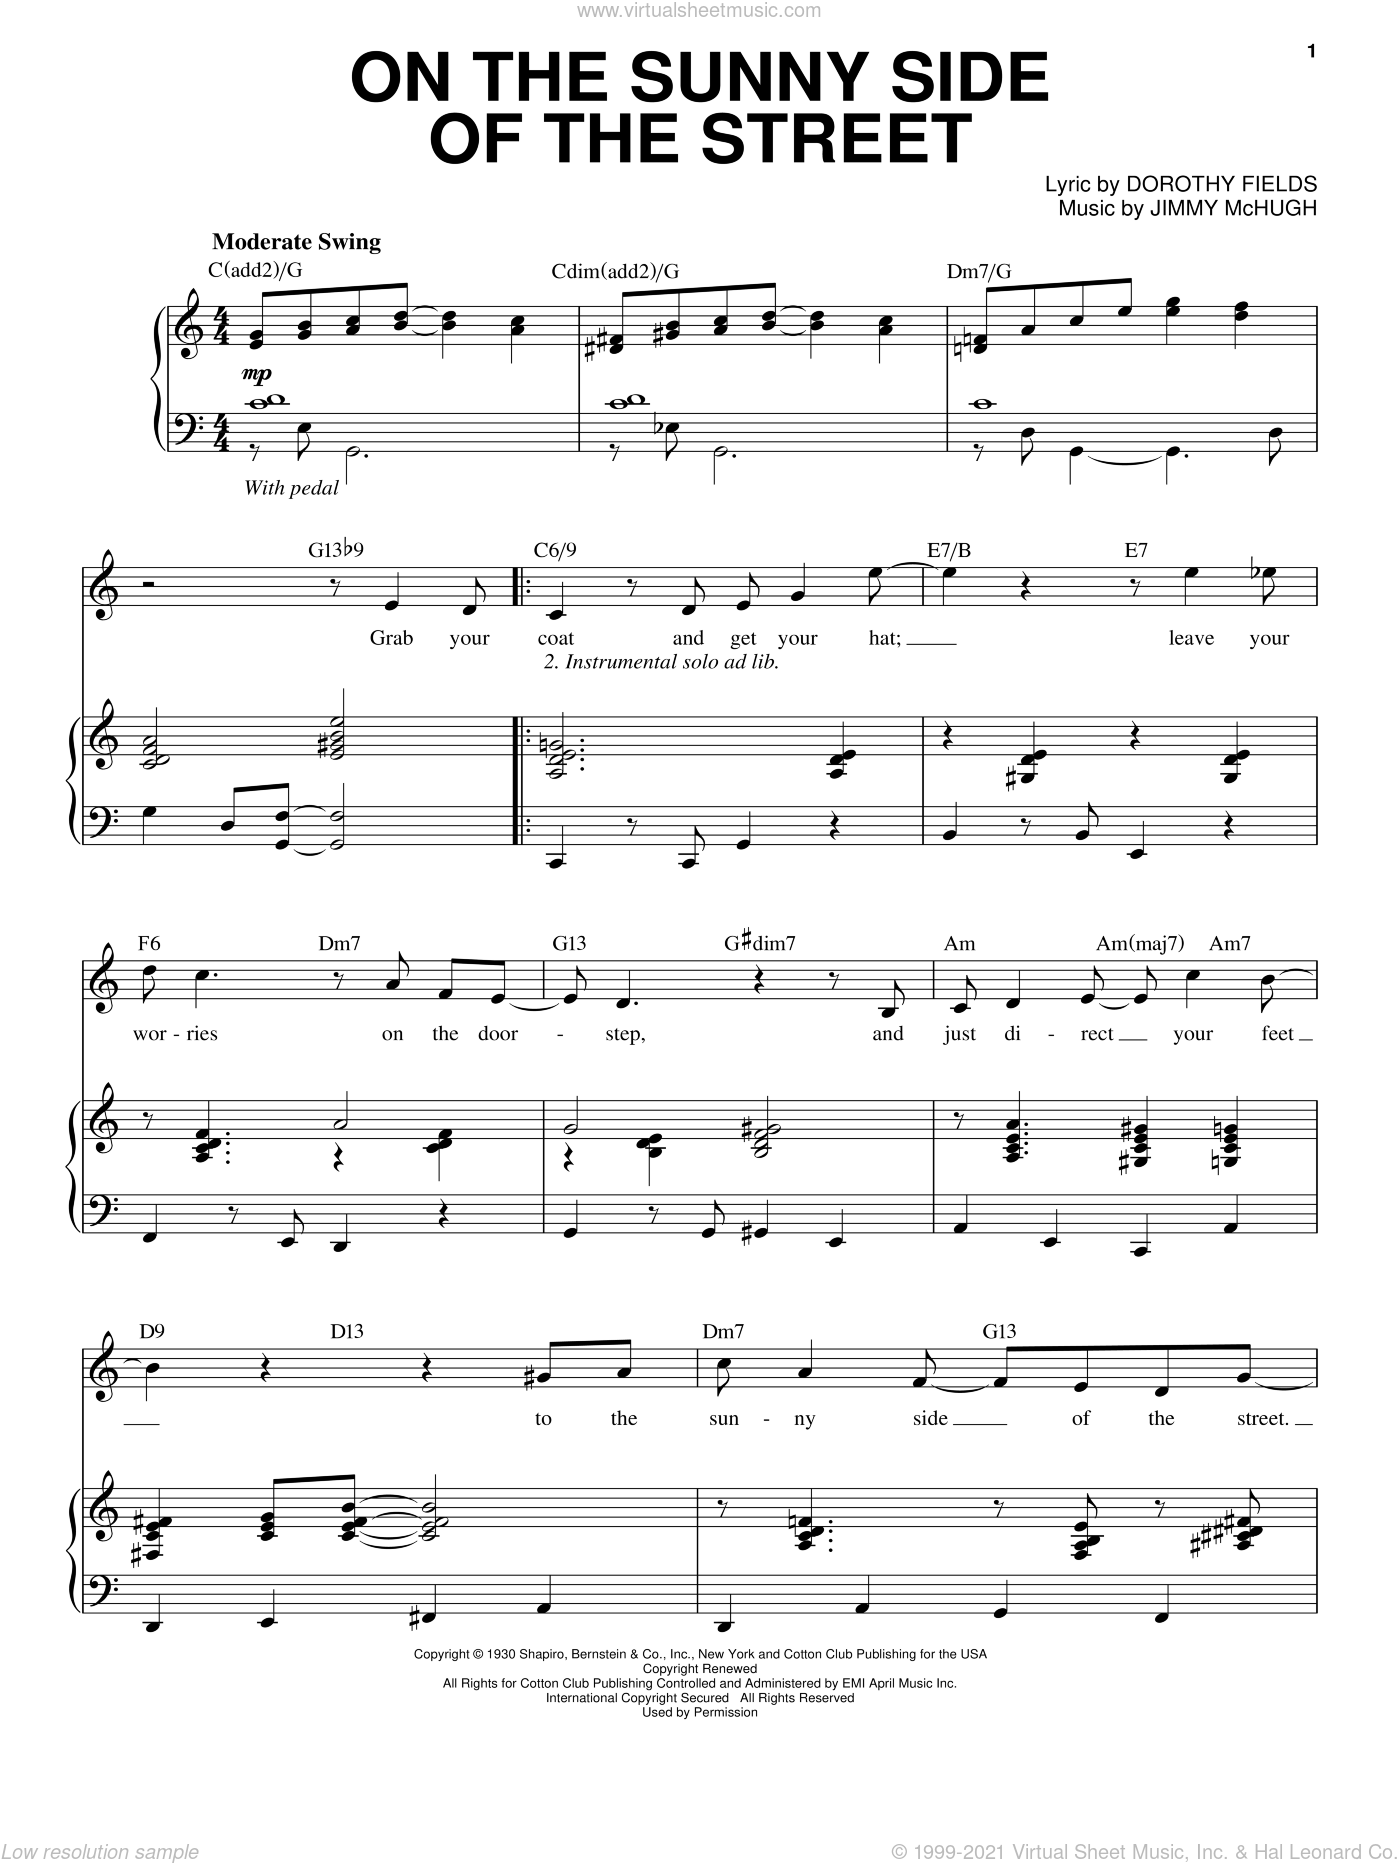 On The Sunny Side Of The Street sheet music for voice and piano by Jimmy McHugh